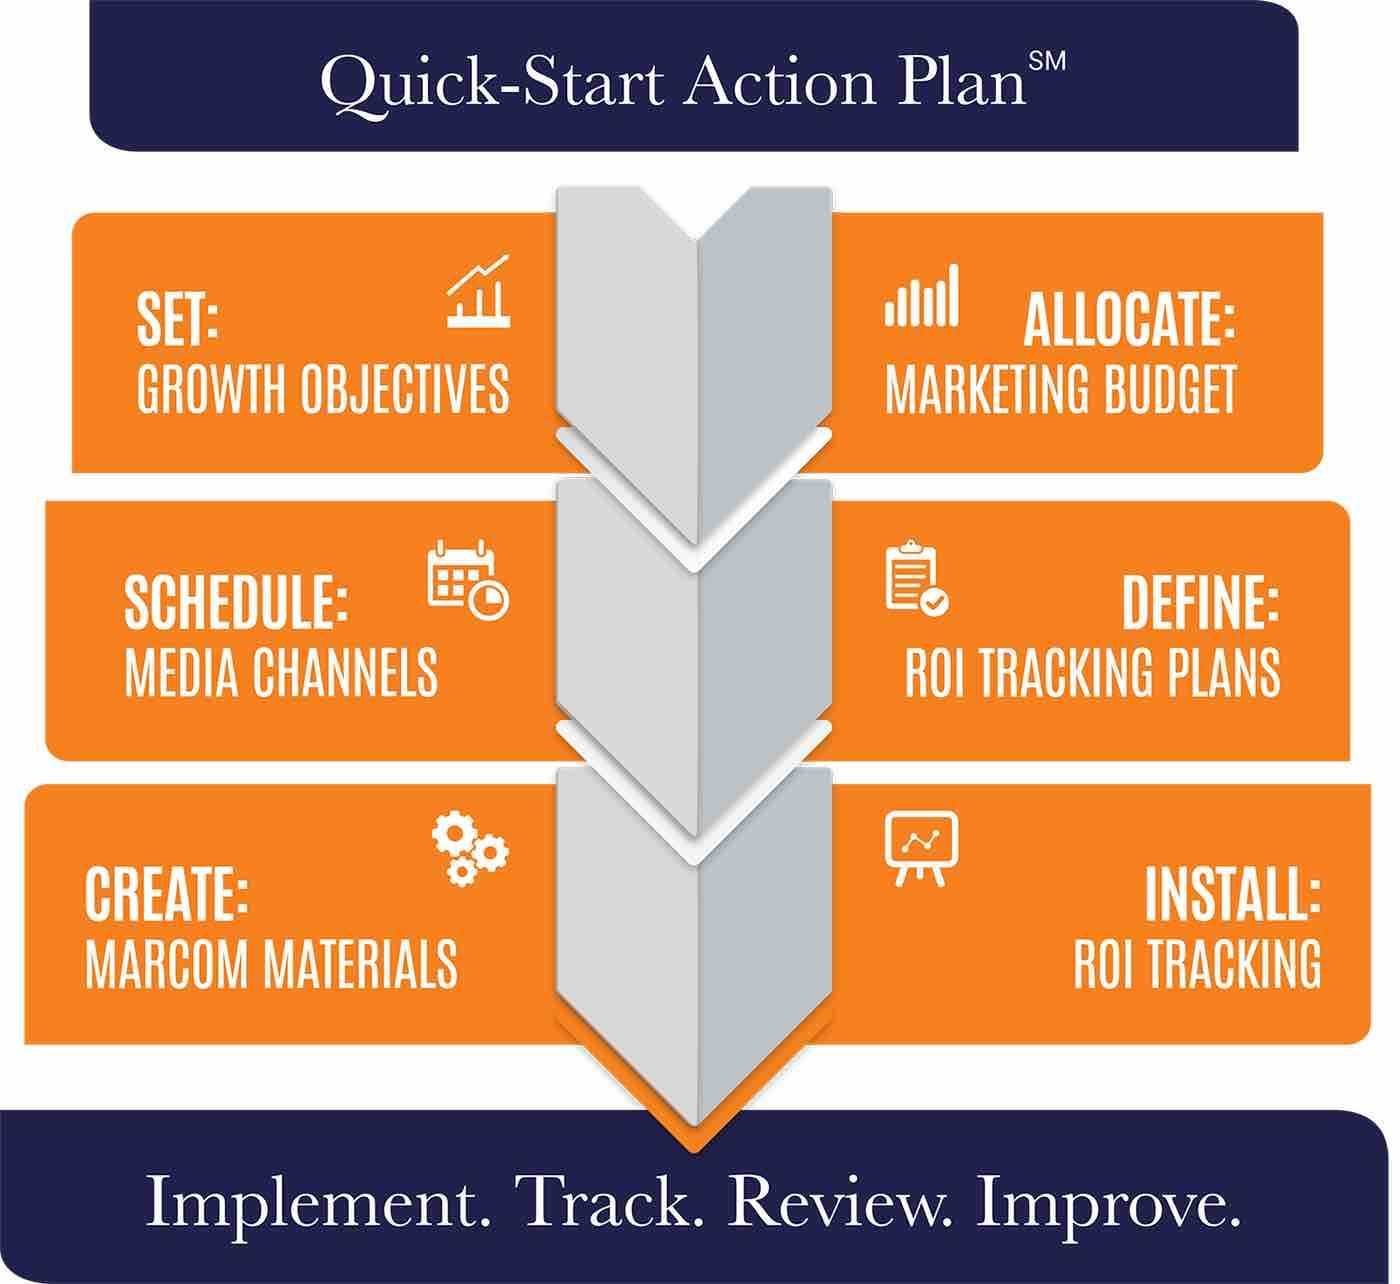 Quick-Start Marketing Action Plan